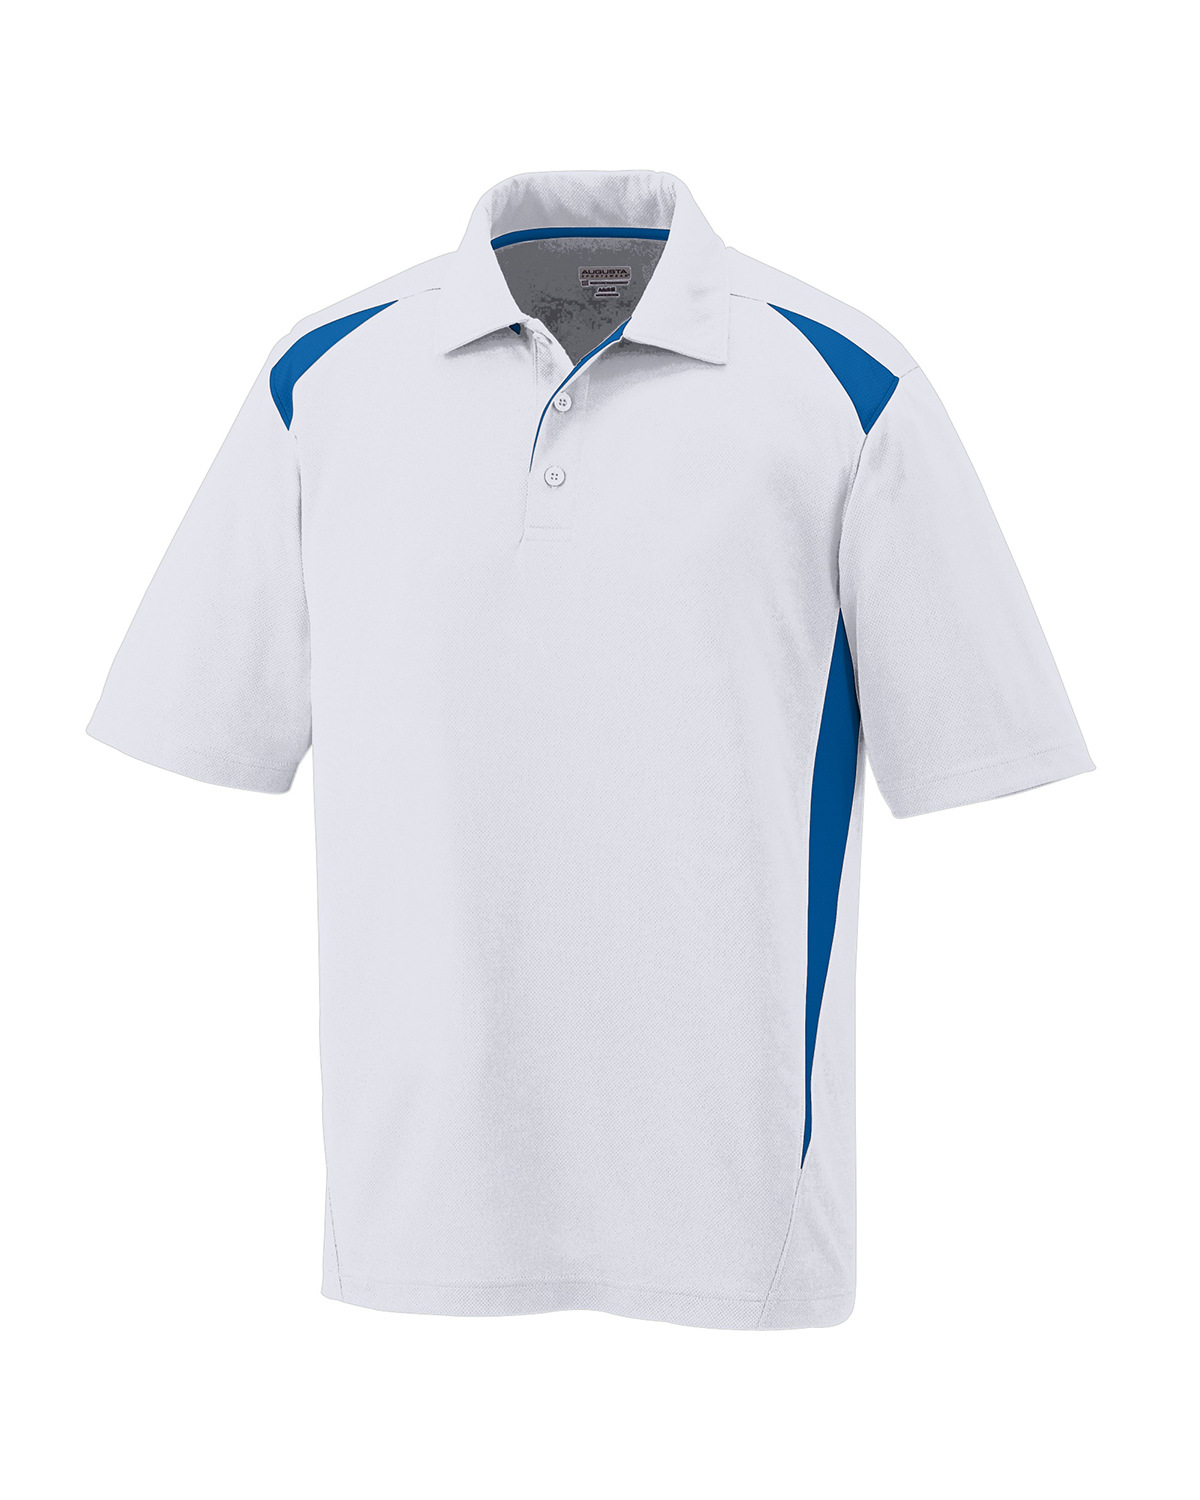 X-Large Augusta Sportswear Premier Sport Shirt White and Navy